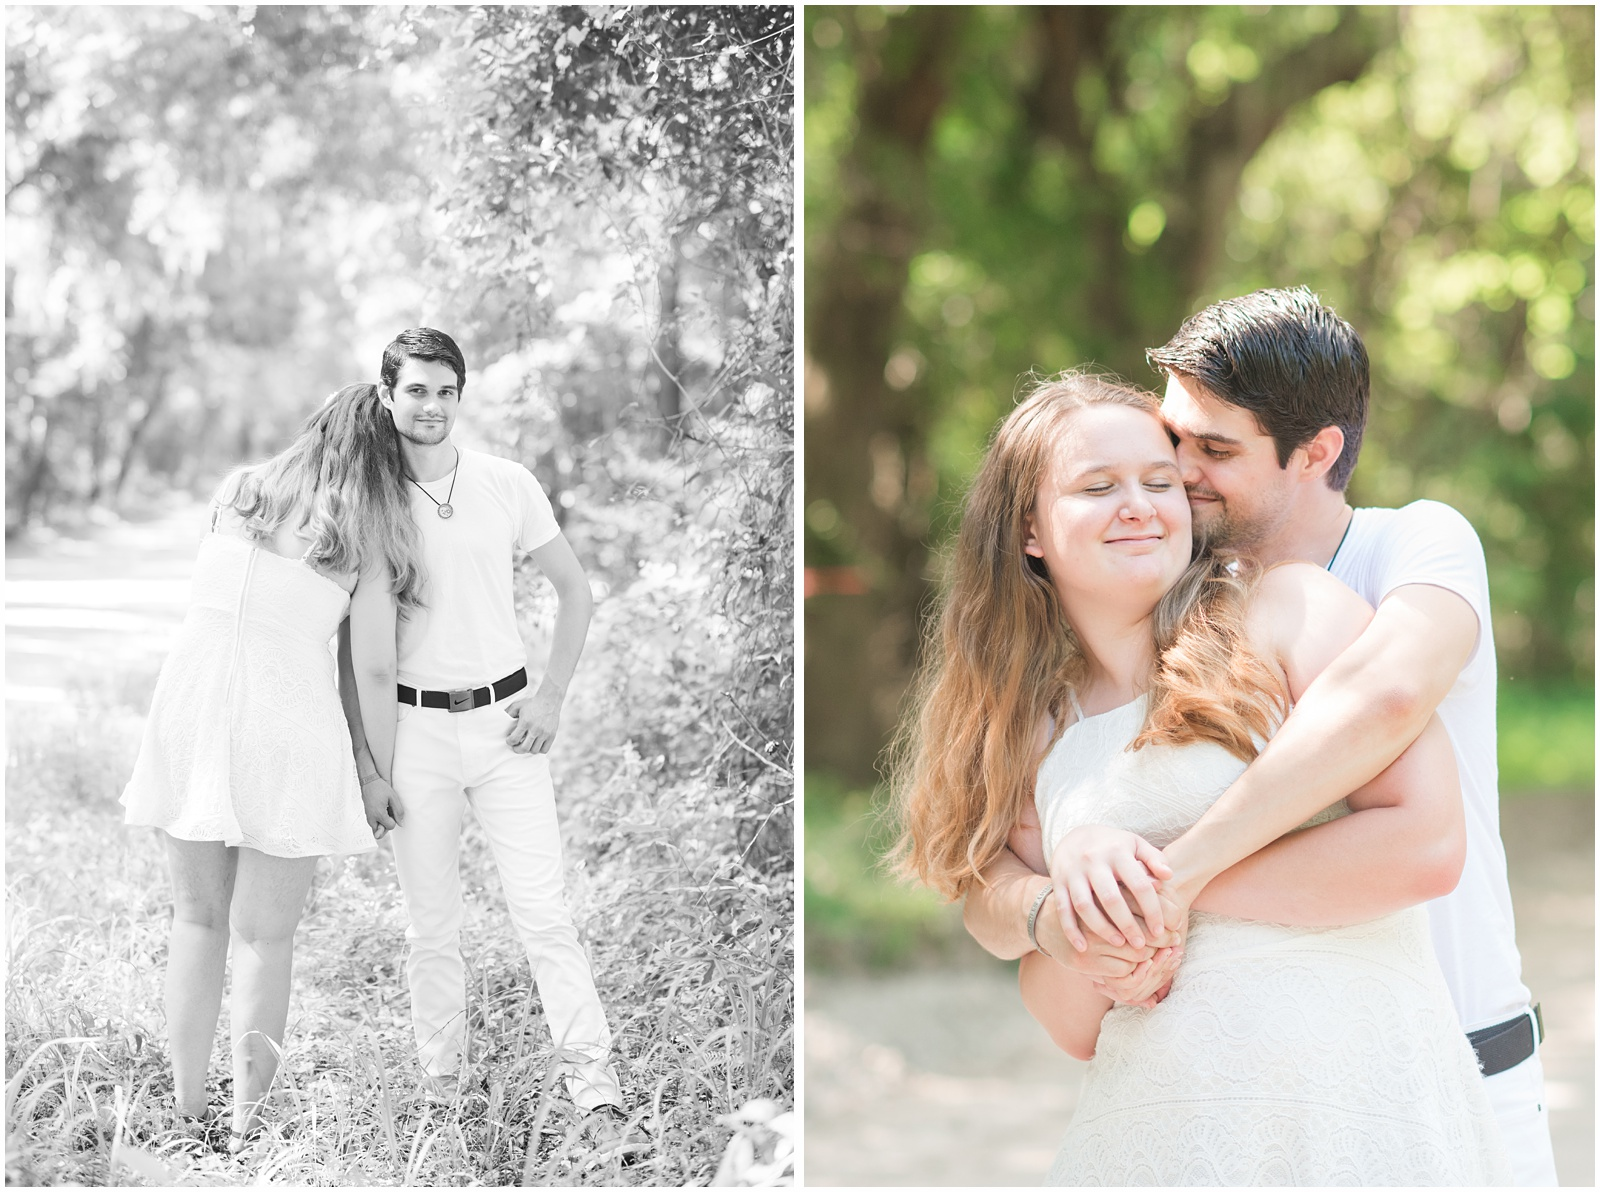 Fort White_Florida_Outdoor_Engagement_Portraits_22.jpg